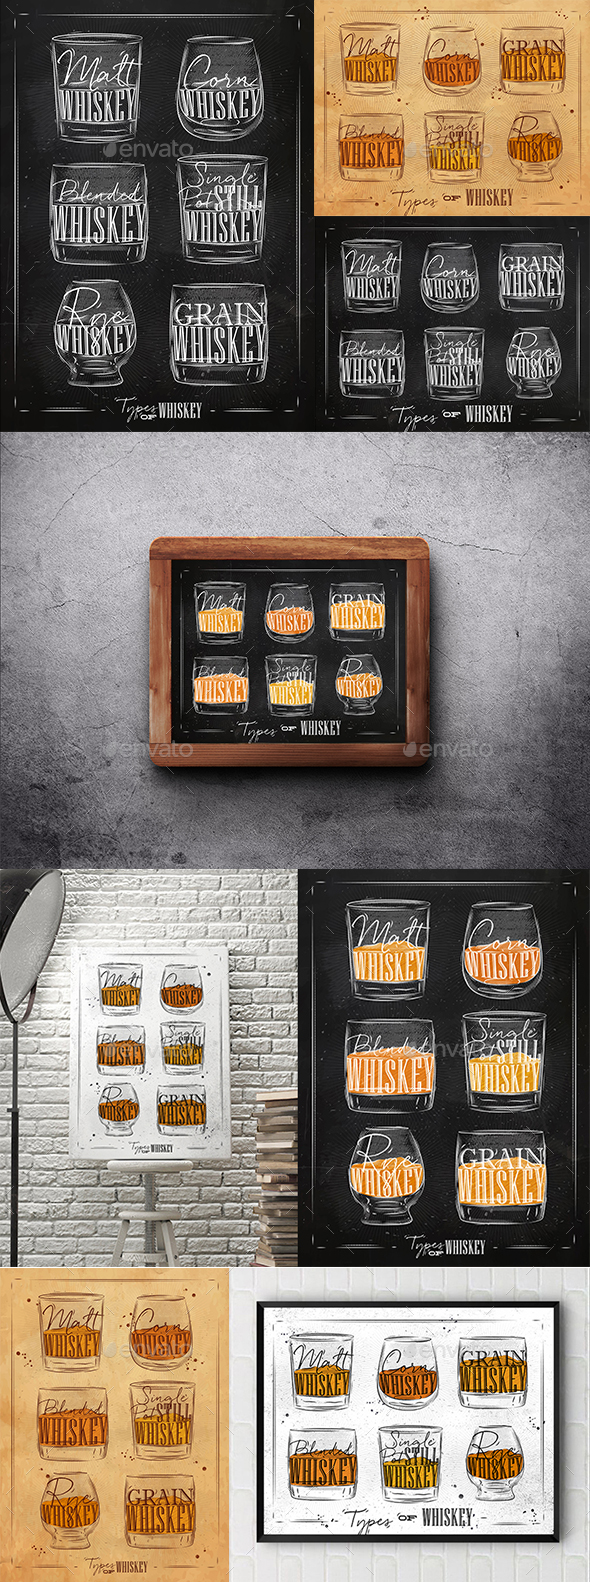 Whiskey Types Posters - Food Objects